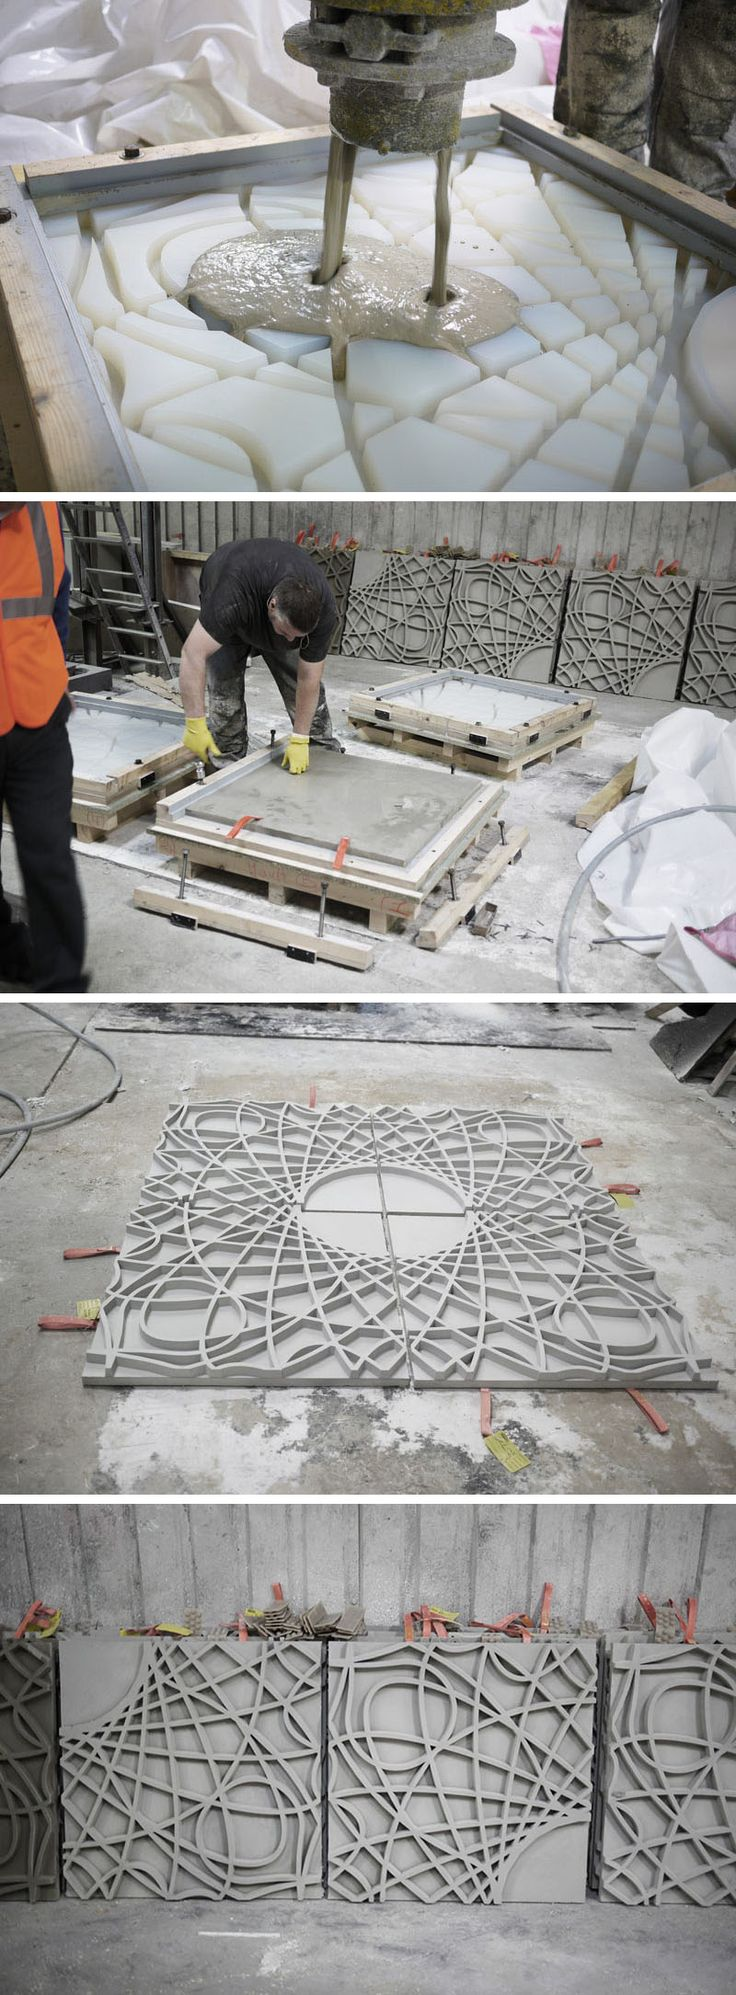 Concrete was poured into molds to create decorative concrete panels that were then installed on the facade of a building in France.